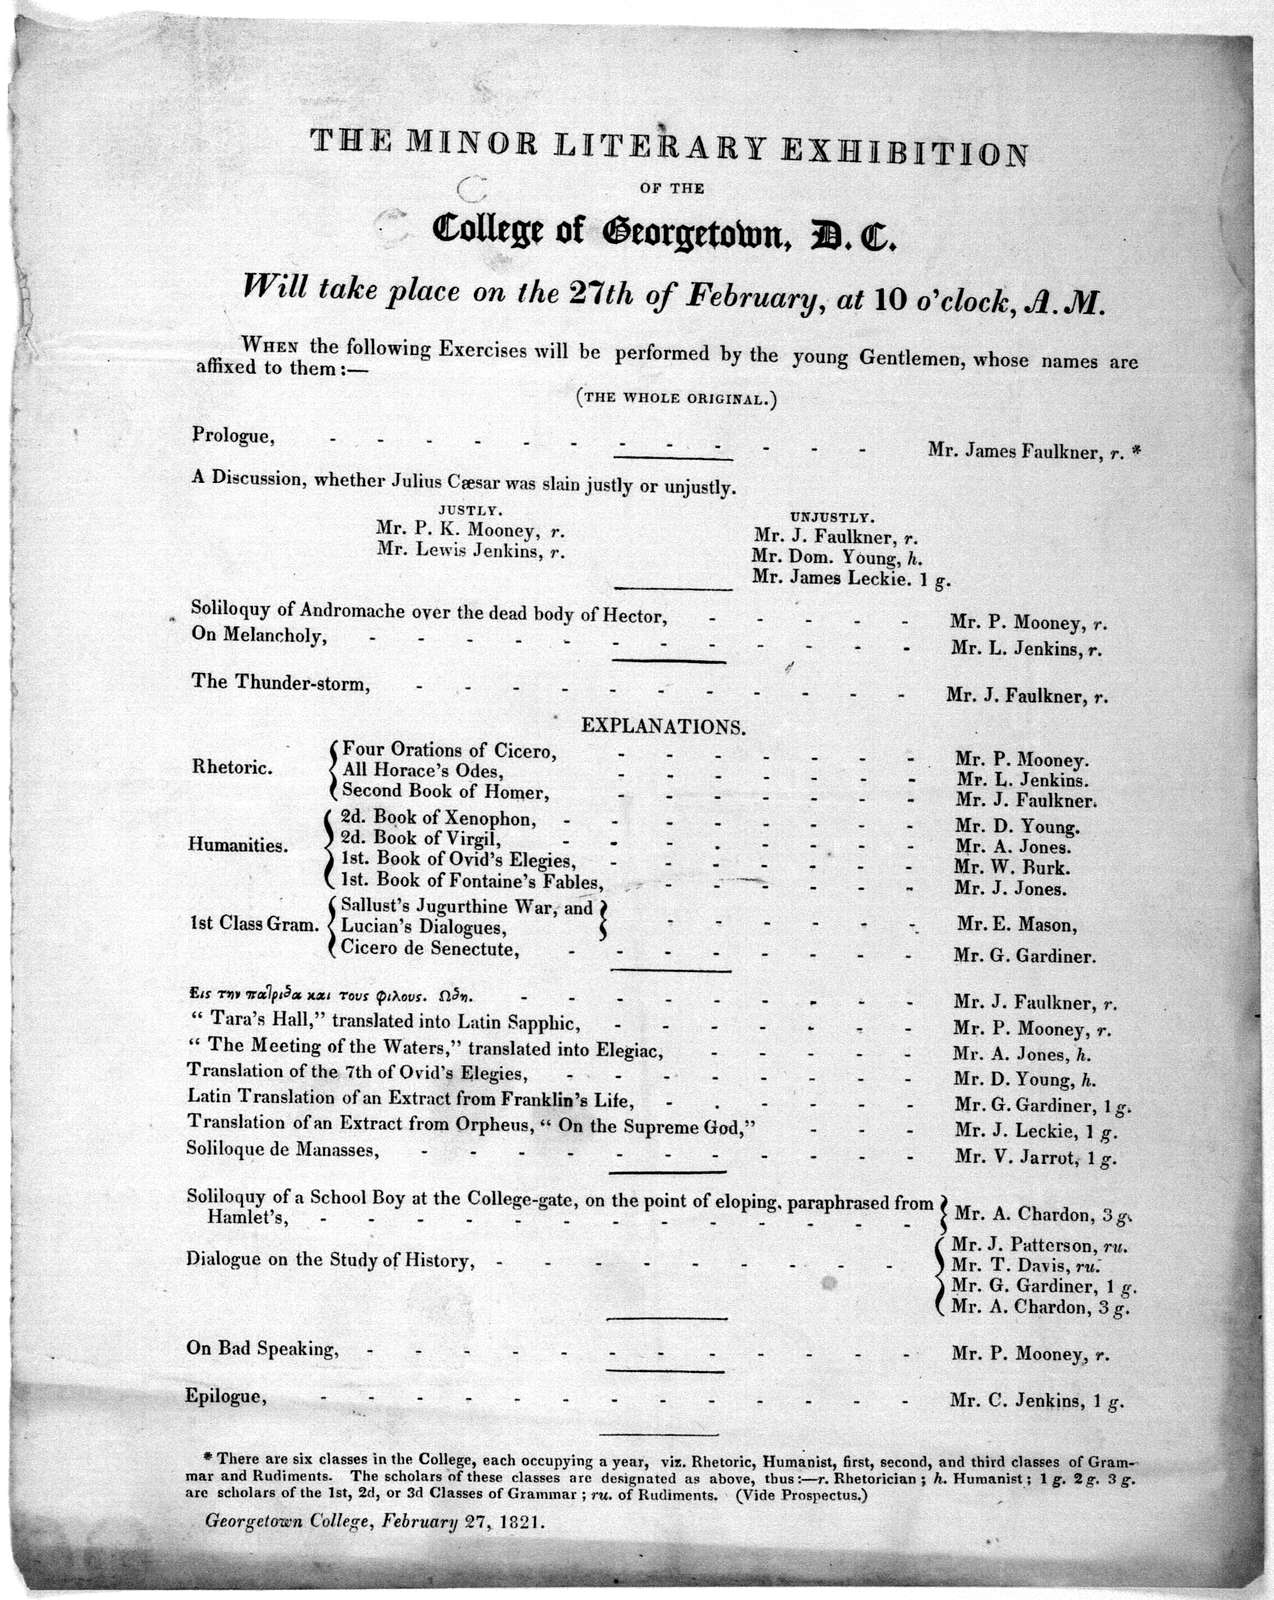 The minor literary exhibition of the College of Georgetown, D. C. will take place on the 27th of February, at 10 o'clock, A. M. ... [Georgetown] February 27, 1821.